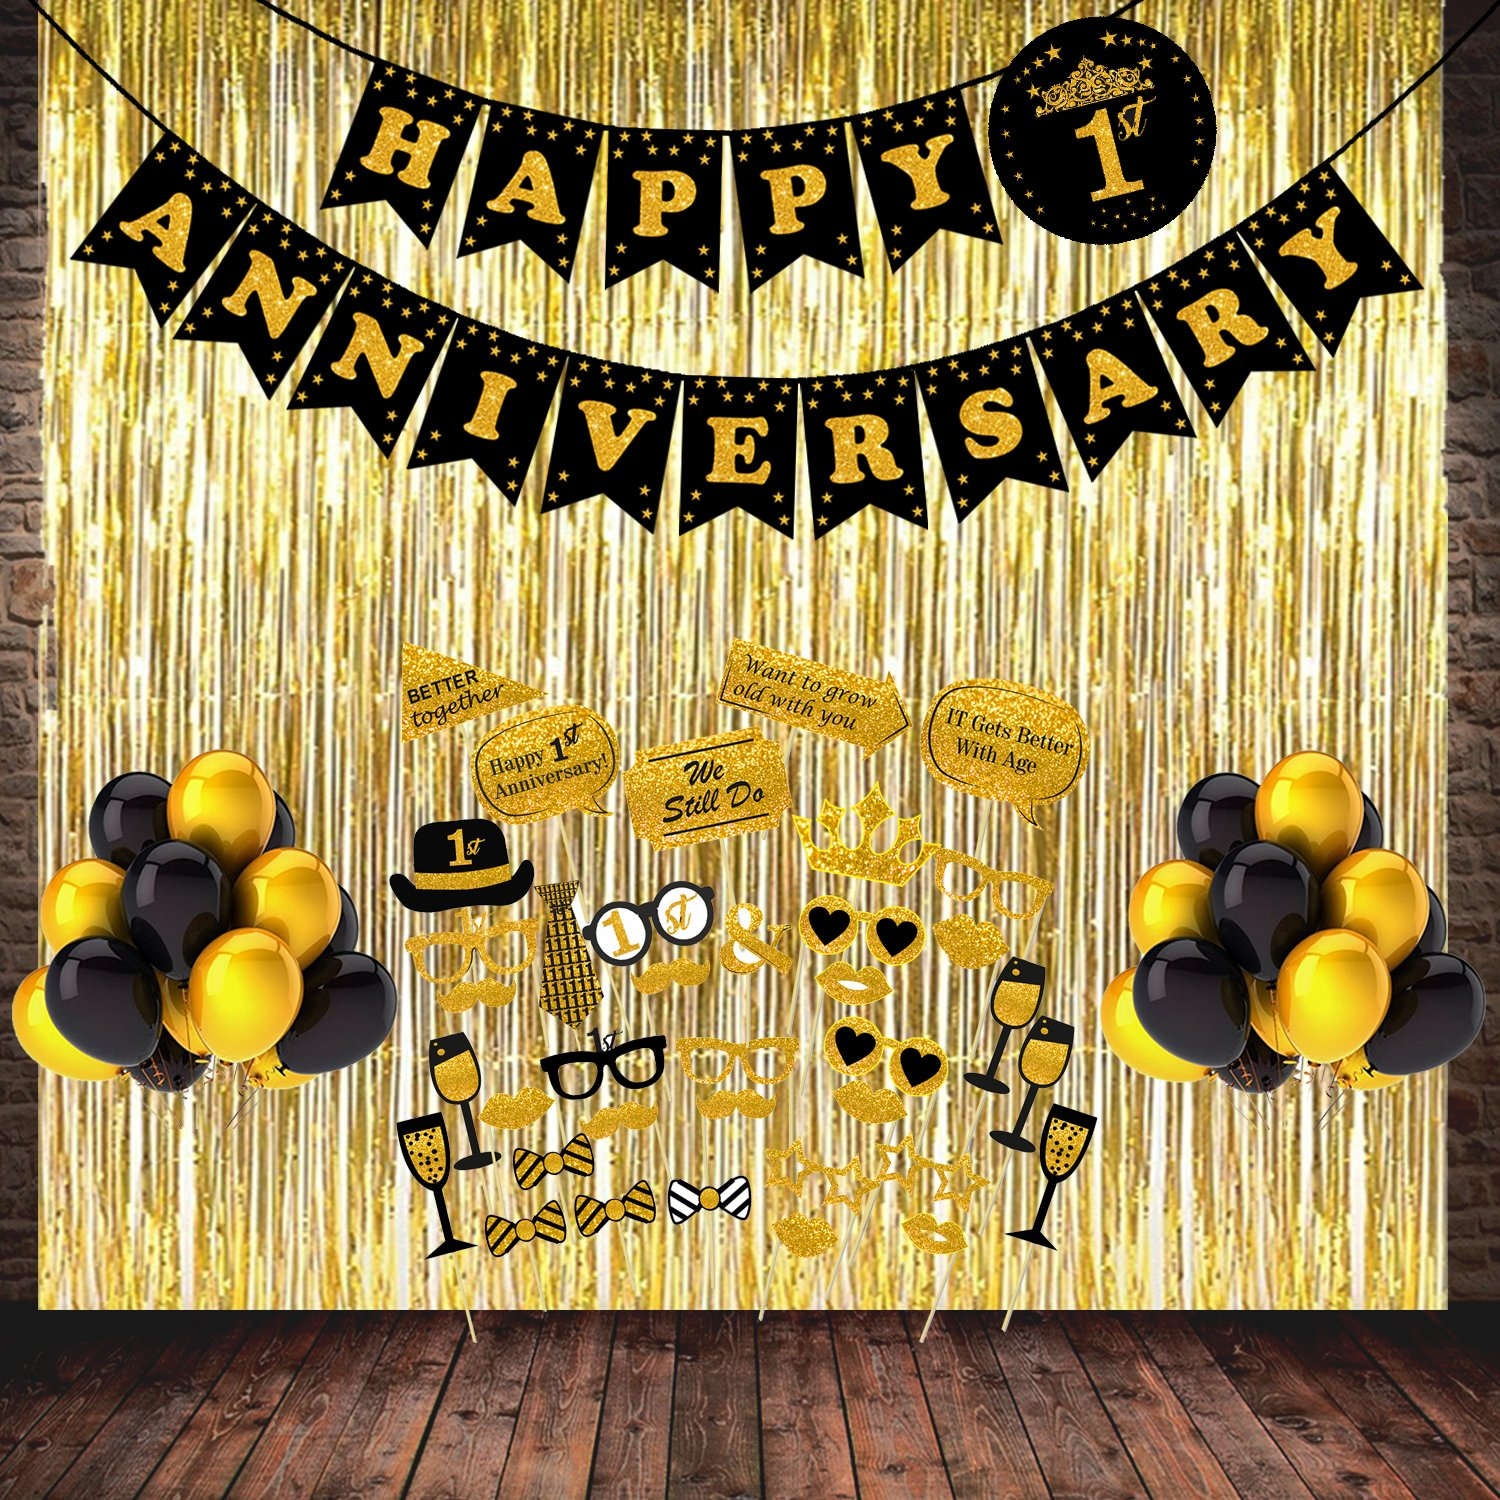 Balloon Decoration Anniversary Decoration Ideas At Home Types Of Wood